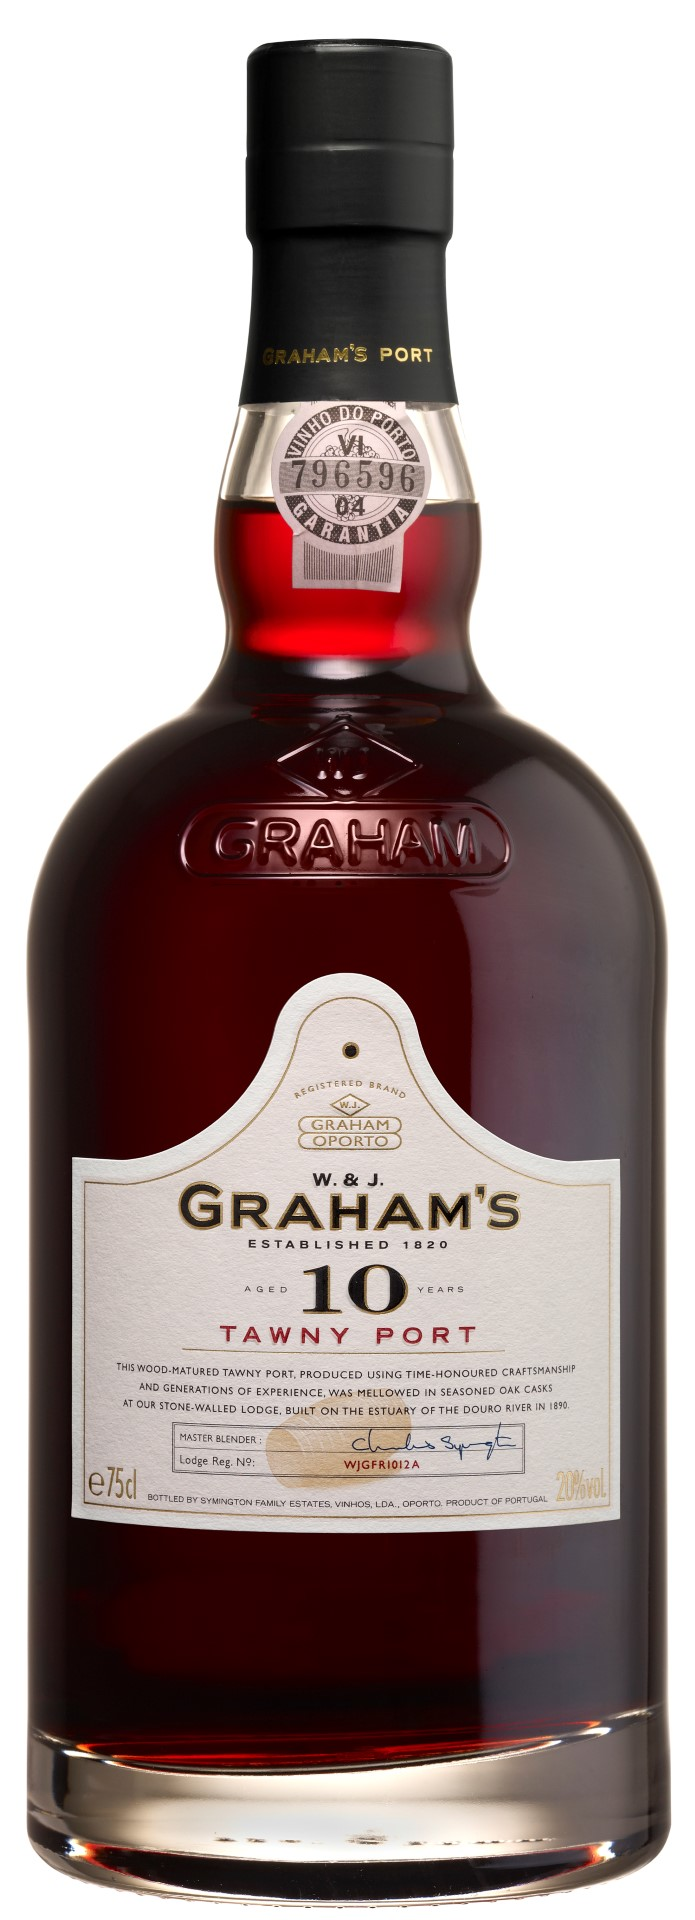 Graham's Tawny Port 10 Years Old (2016)